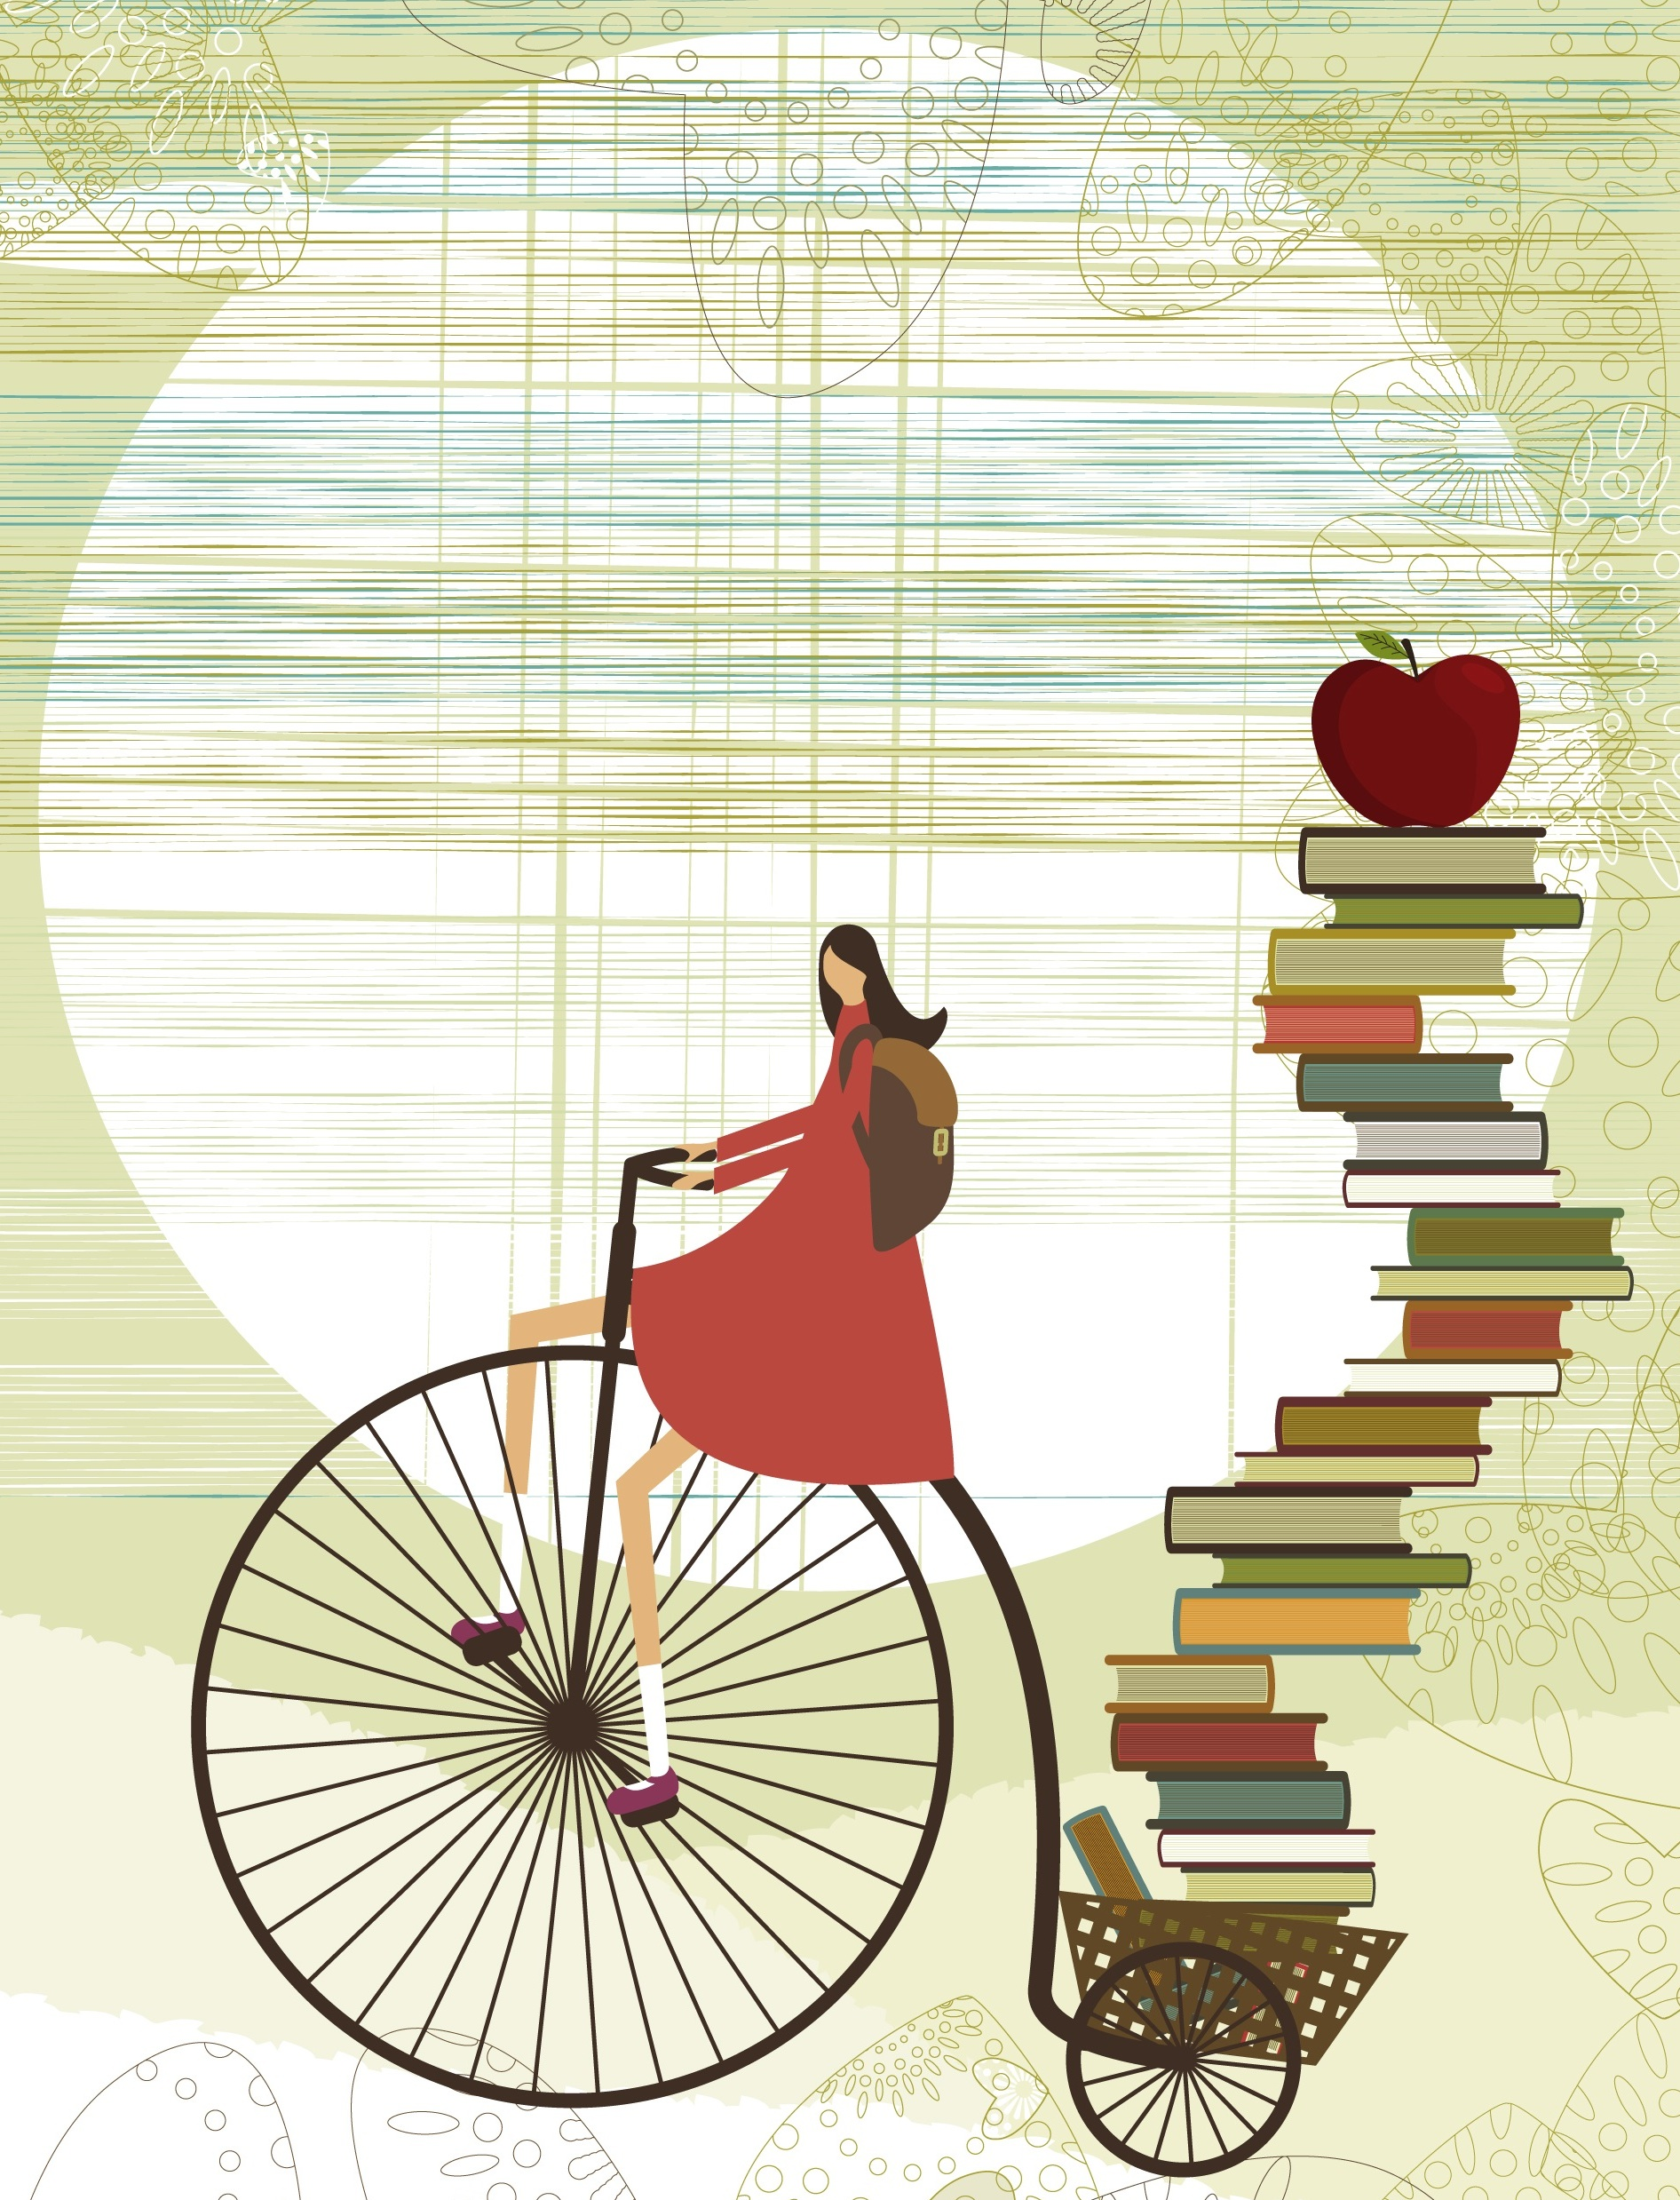 Libros Ilustraciones Illustrations Kathleen O 39brien Online Blog